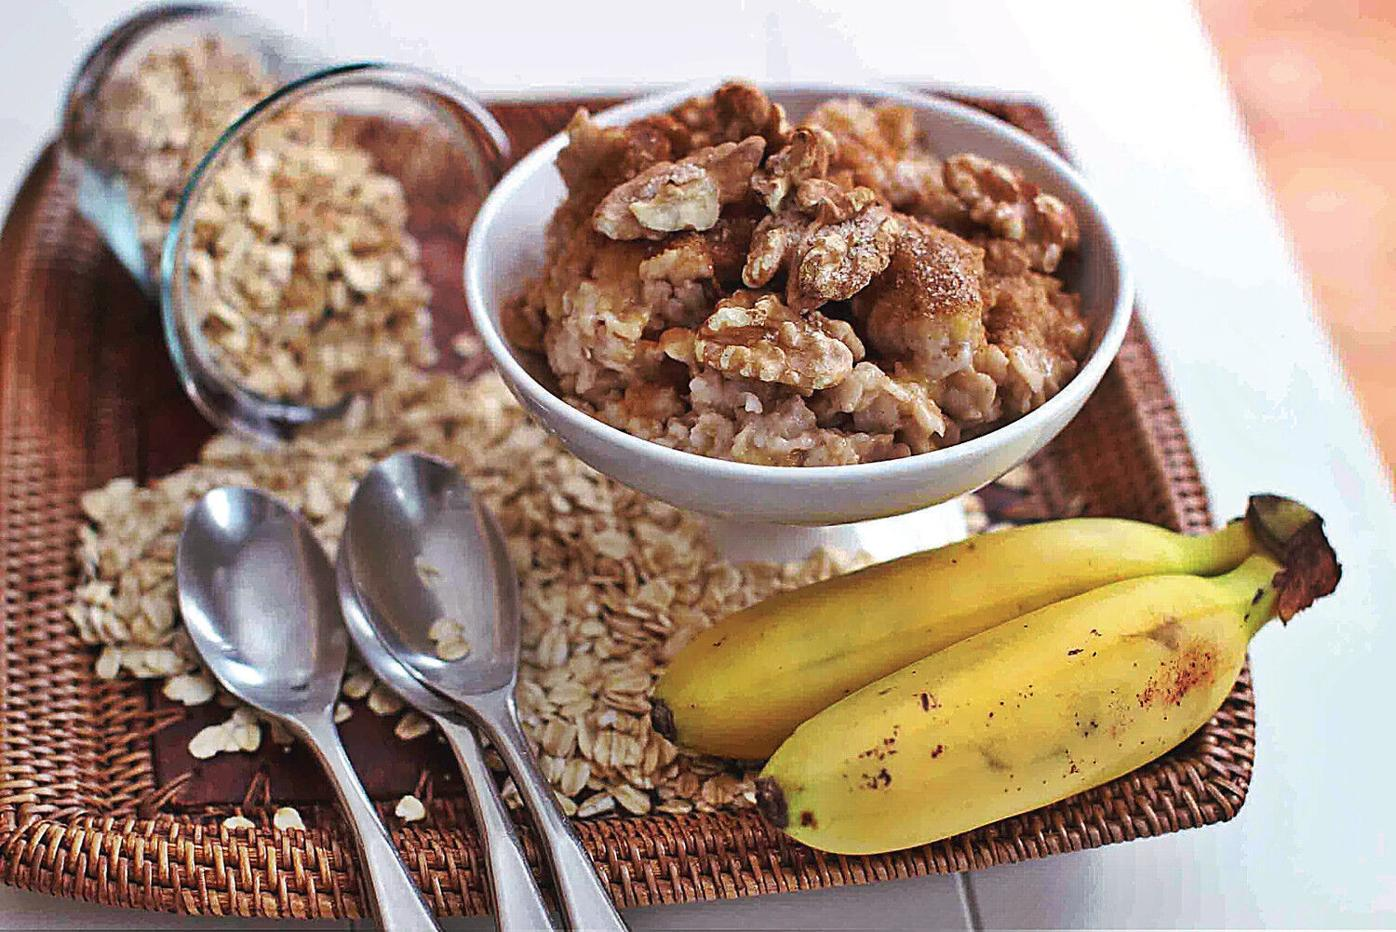 Oatmeal - divine, simple and nutritious